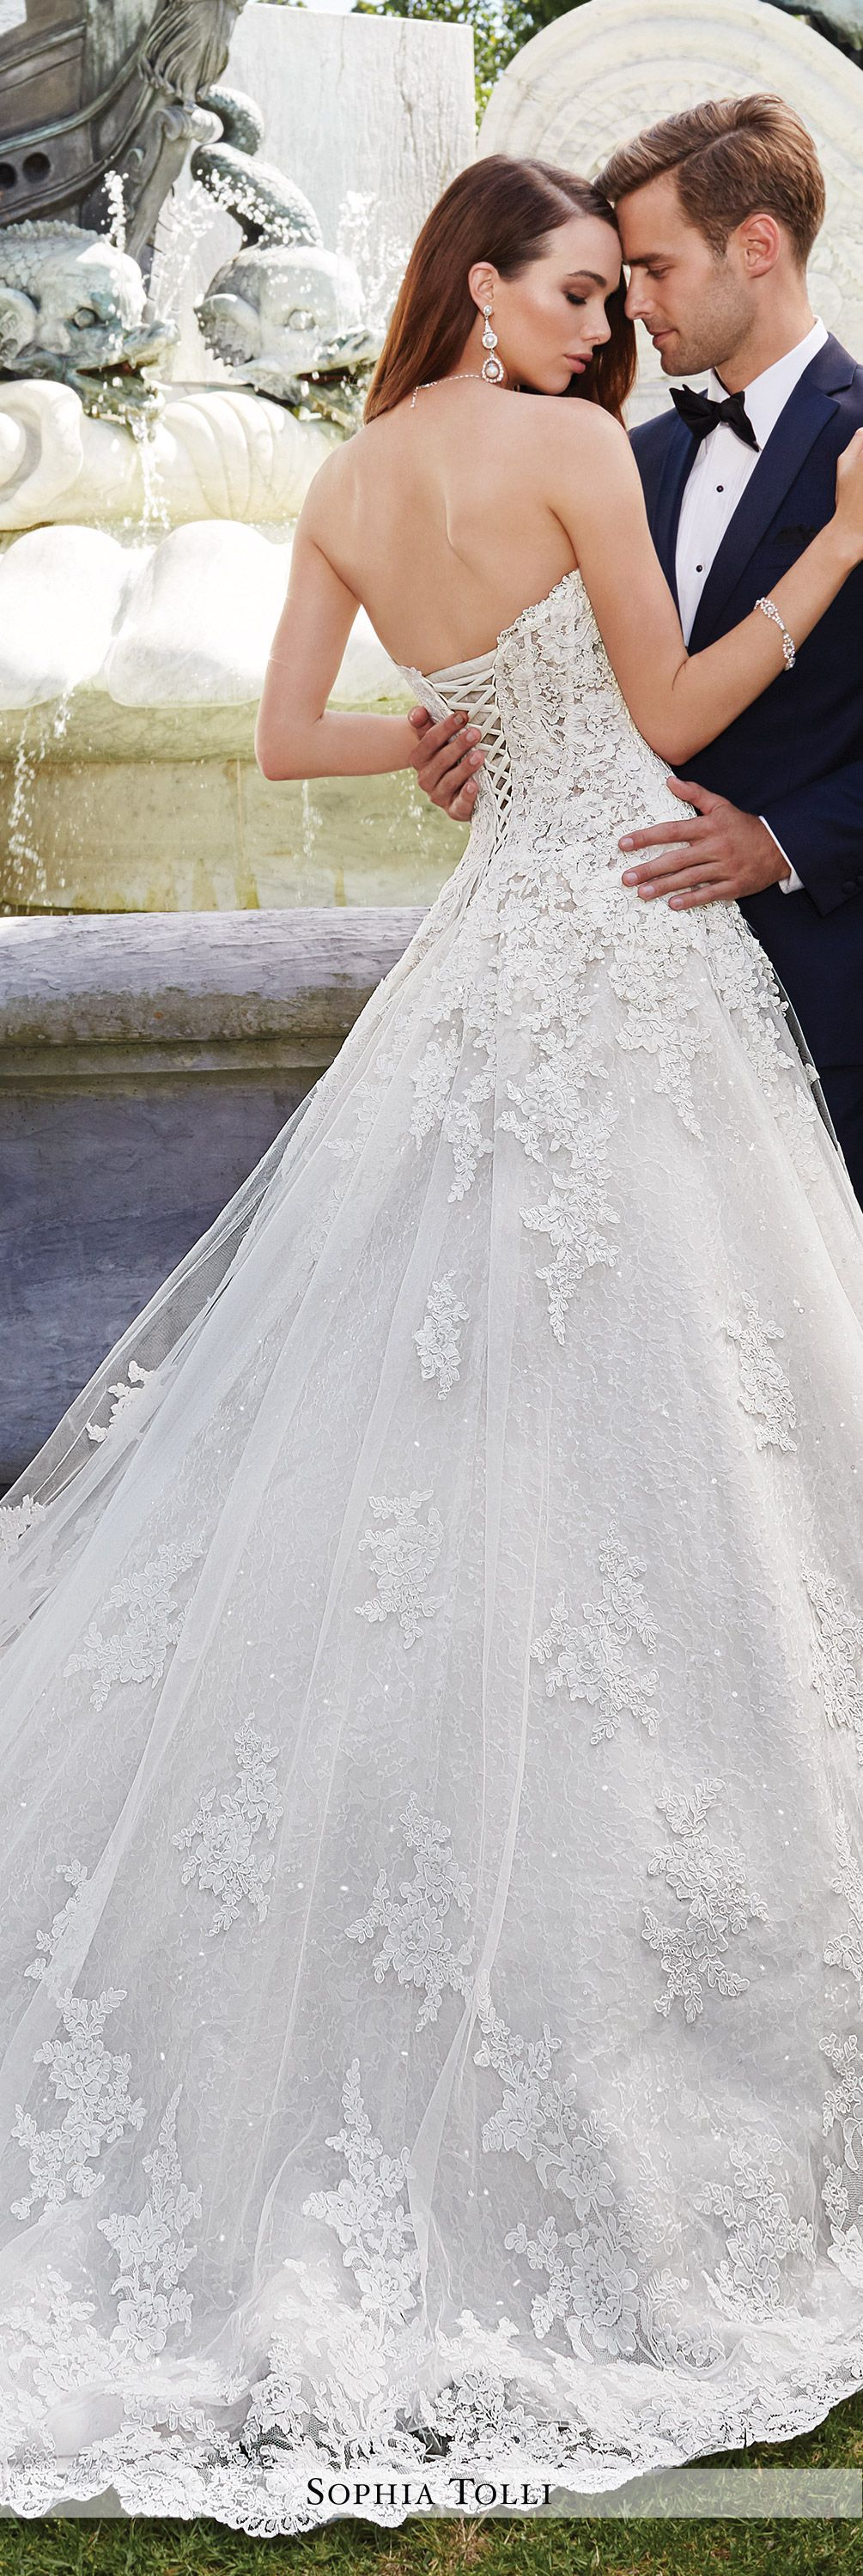 Tulle & Lace Dropped Waist Ballgown Wedding Gown Sophia